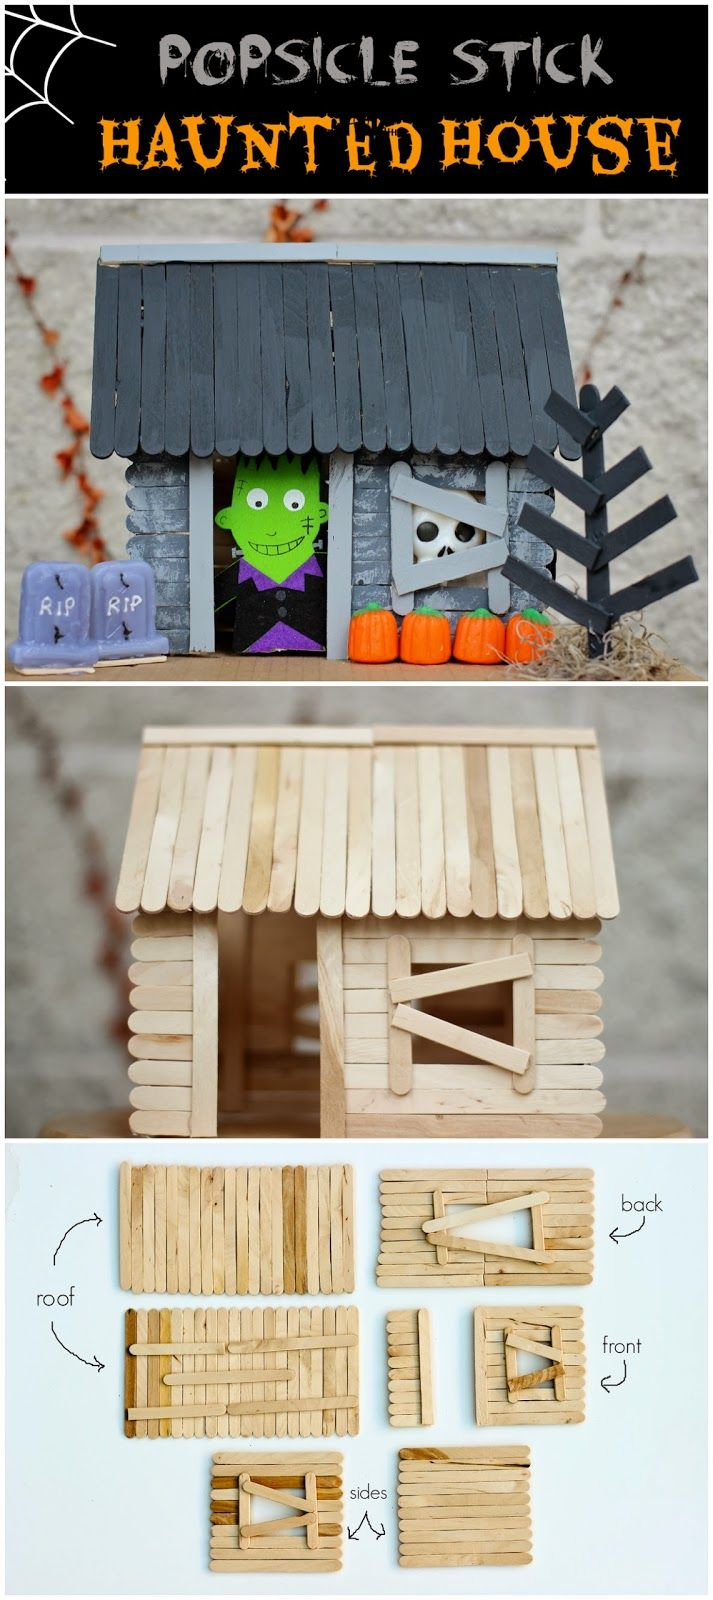 How to make a #Popsicle Stick Haunted House via @Hannah Mestel Mestel Mestel Mestel Mestel Mestel! #ambassador